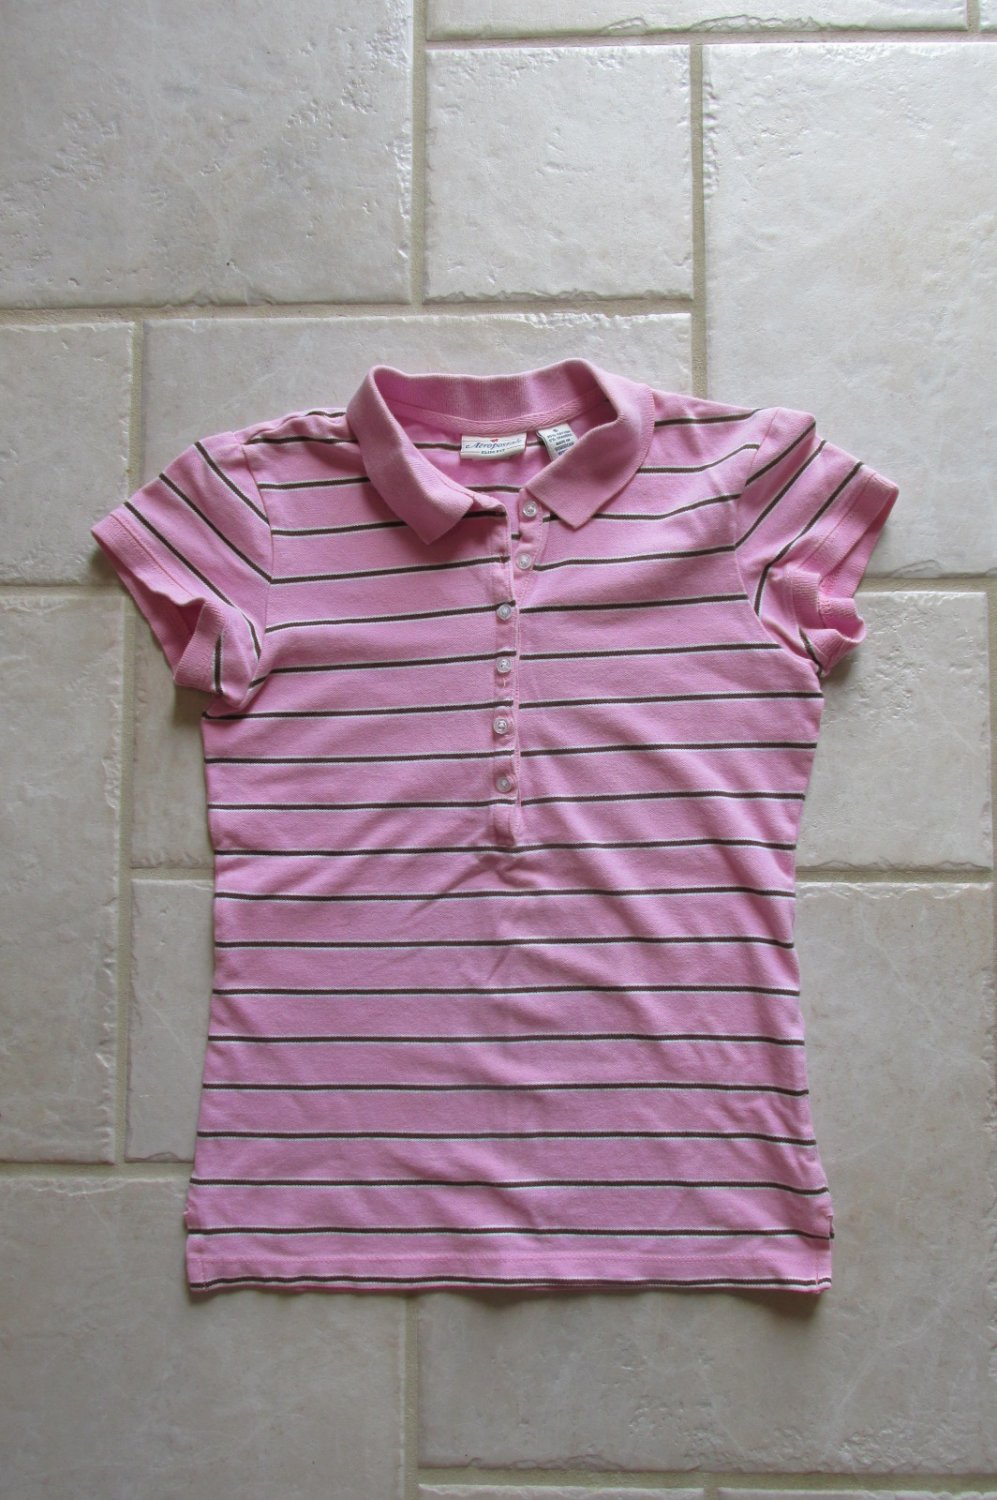 WOMEN'S SIZE S TOPS SET OF 5  PASTEL SPRING CASUAL AEROPOSTALE